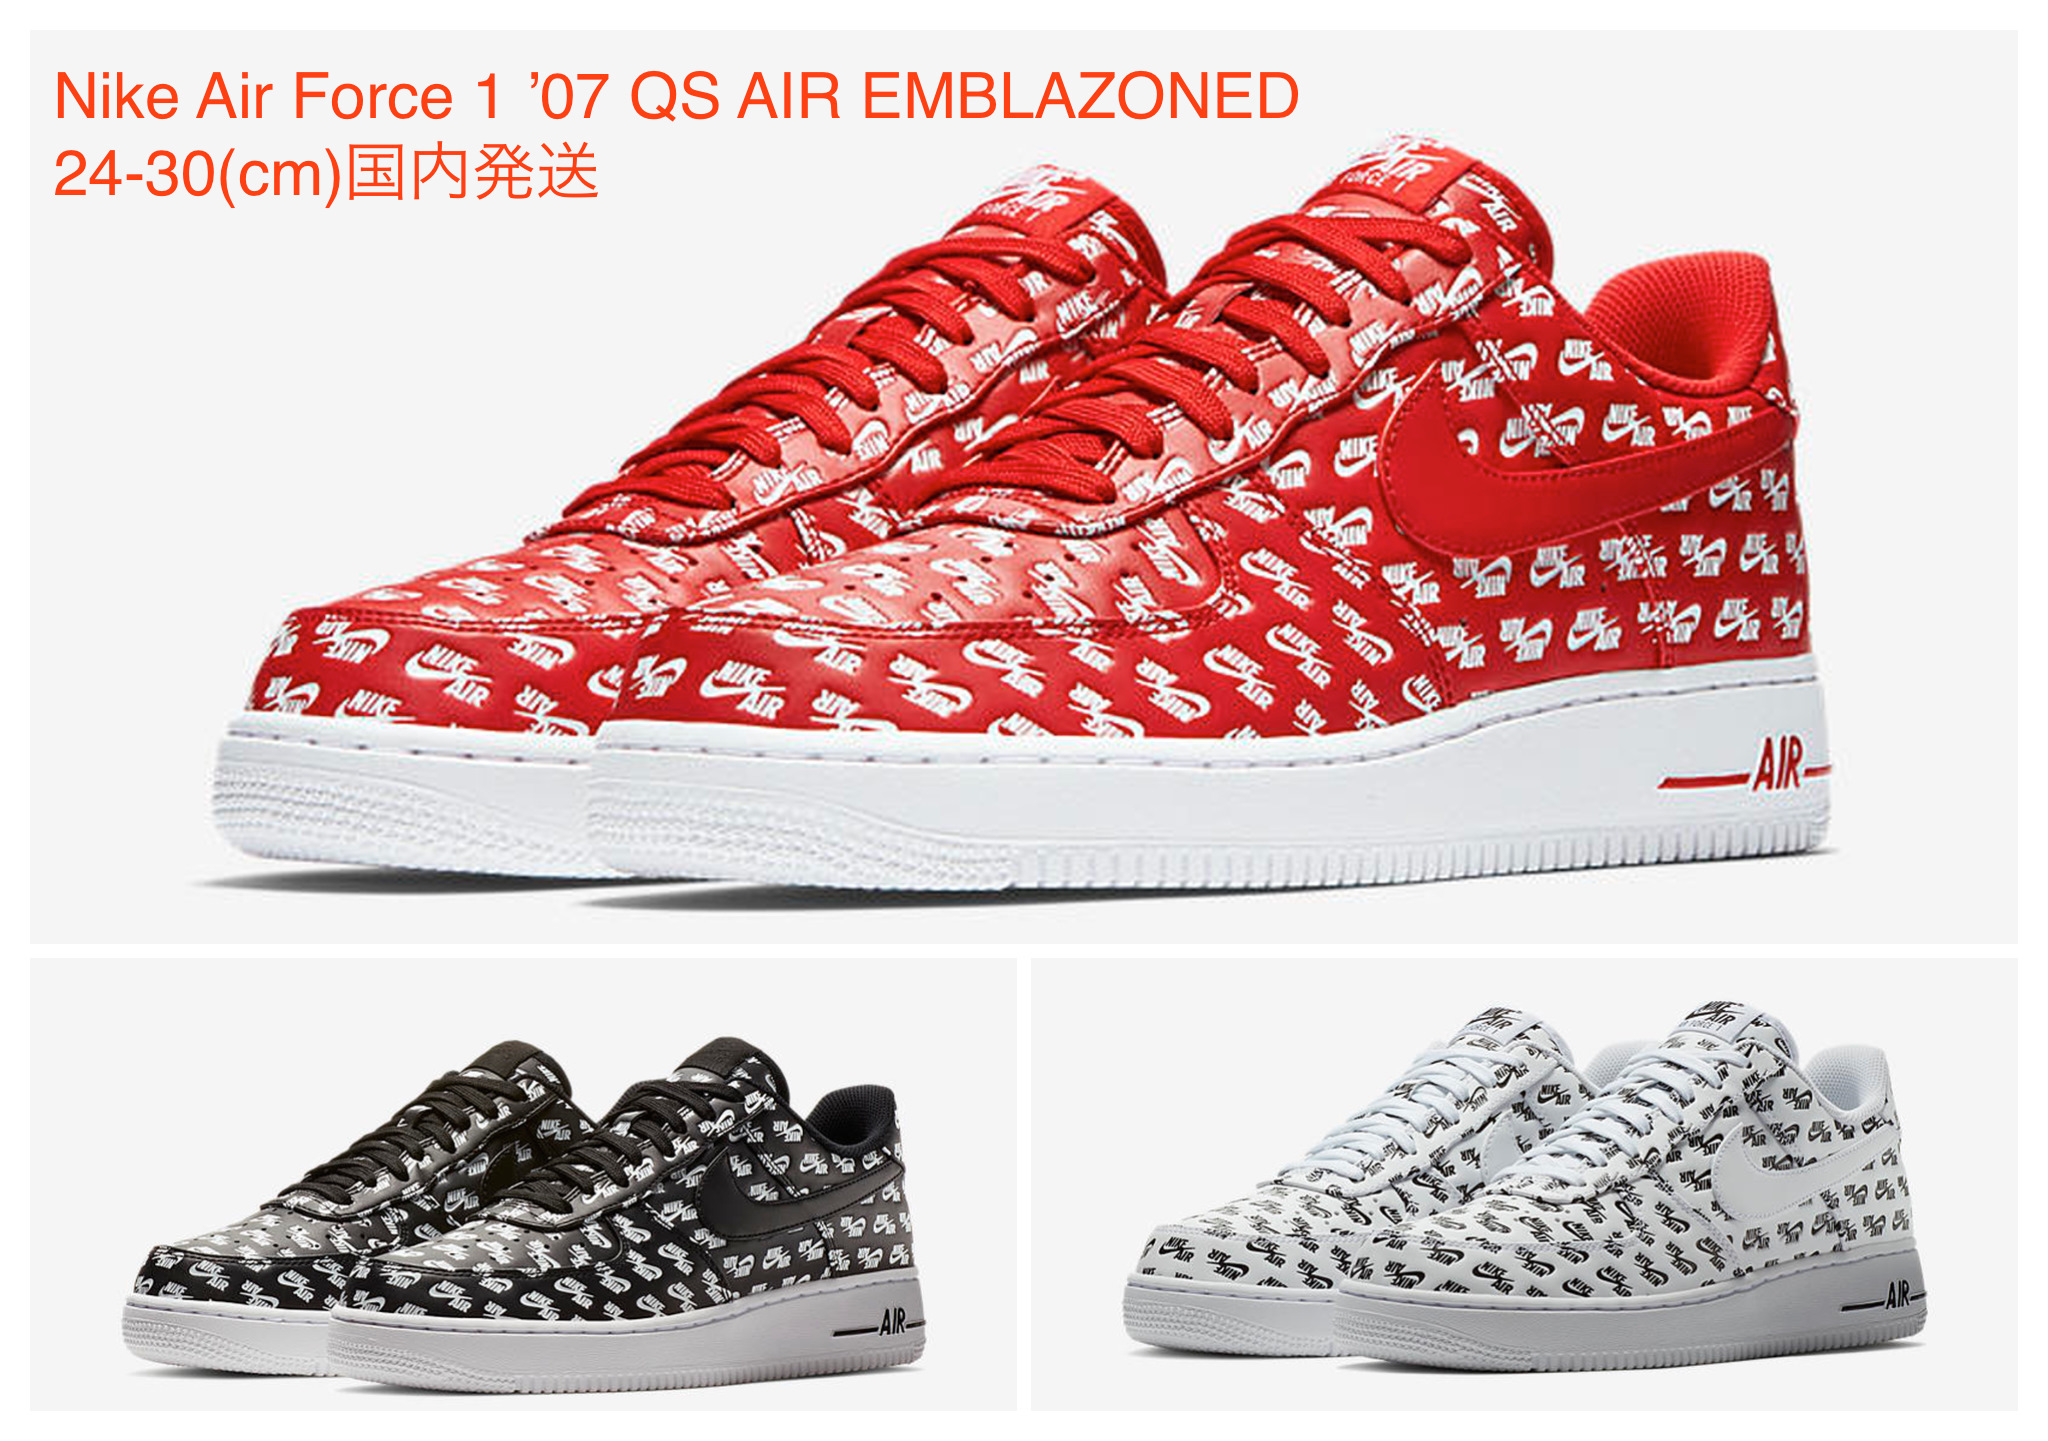 Nike Air Force 1 '07 QS AIR EMBLAZONED ナイキ エアフォース